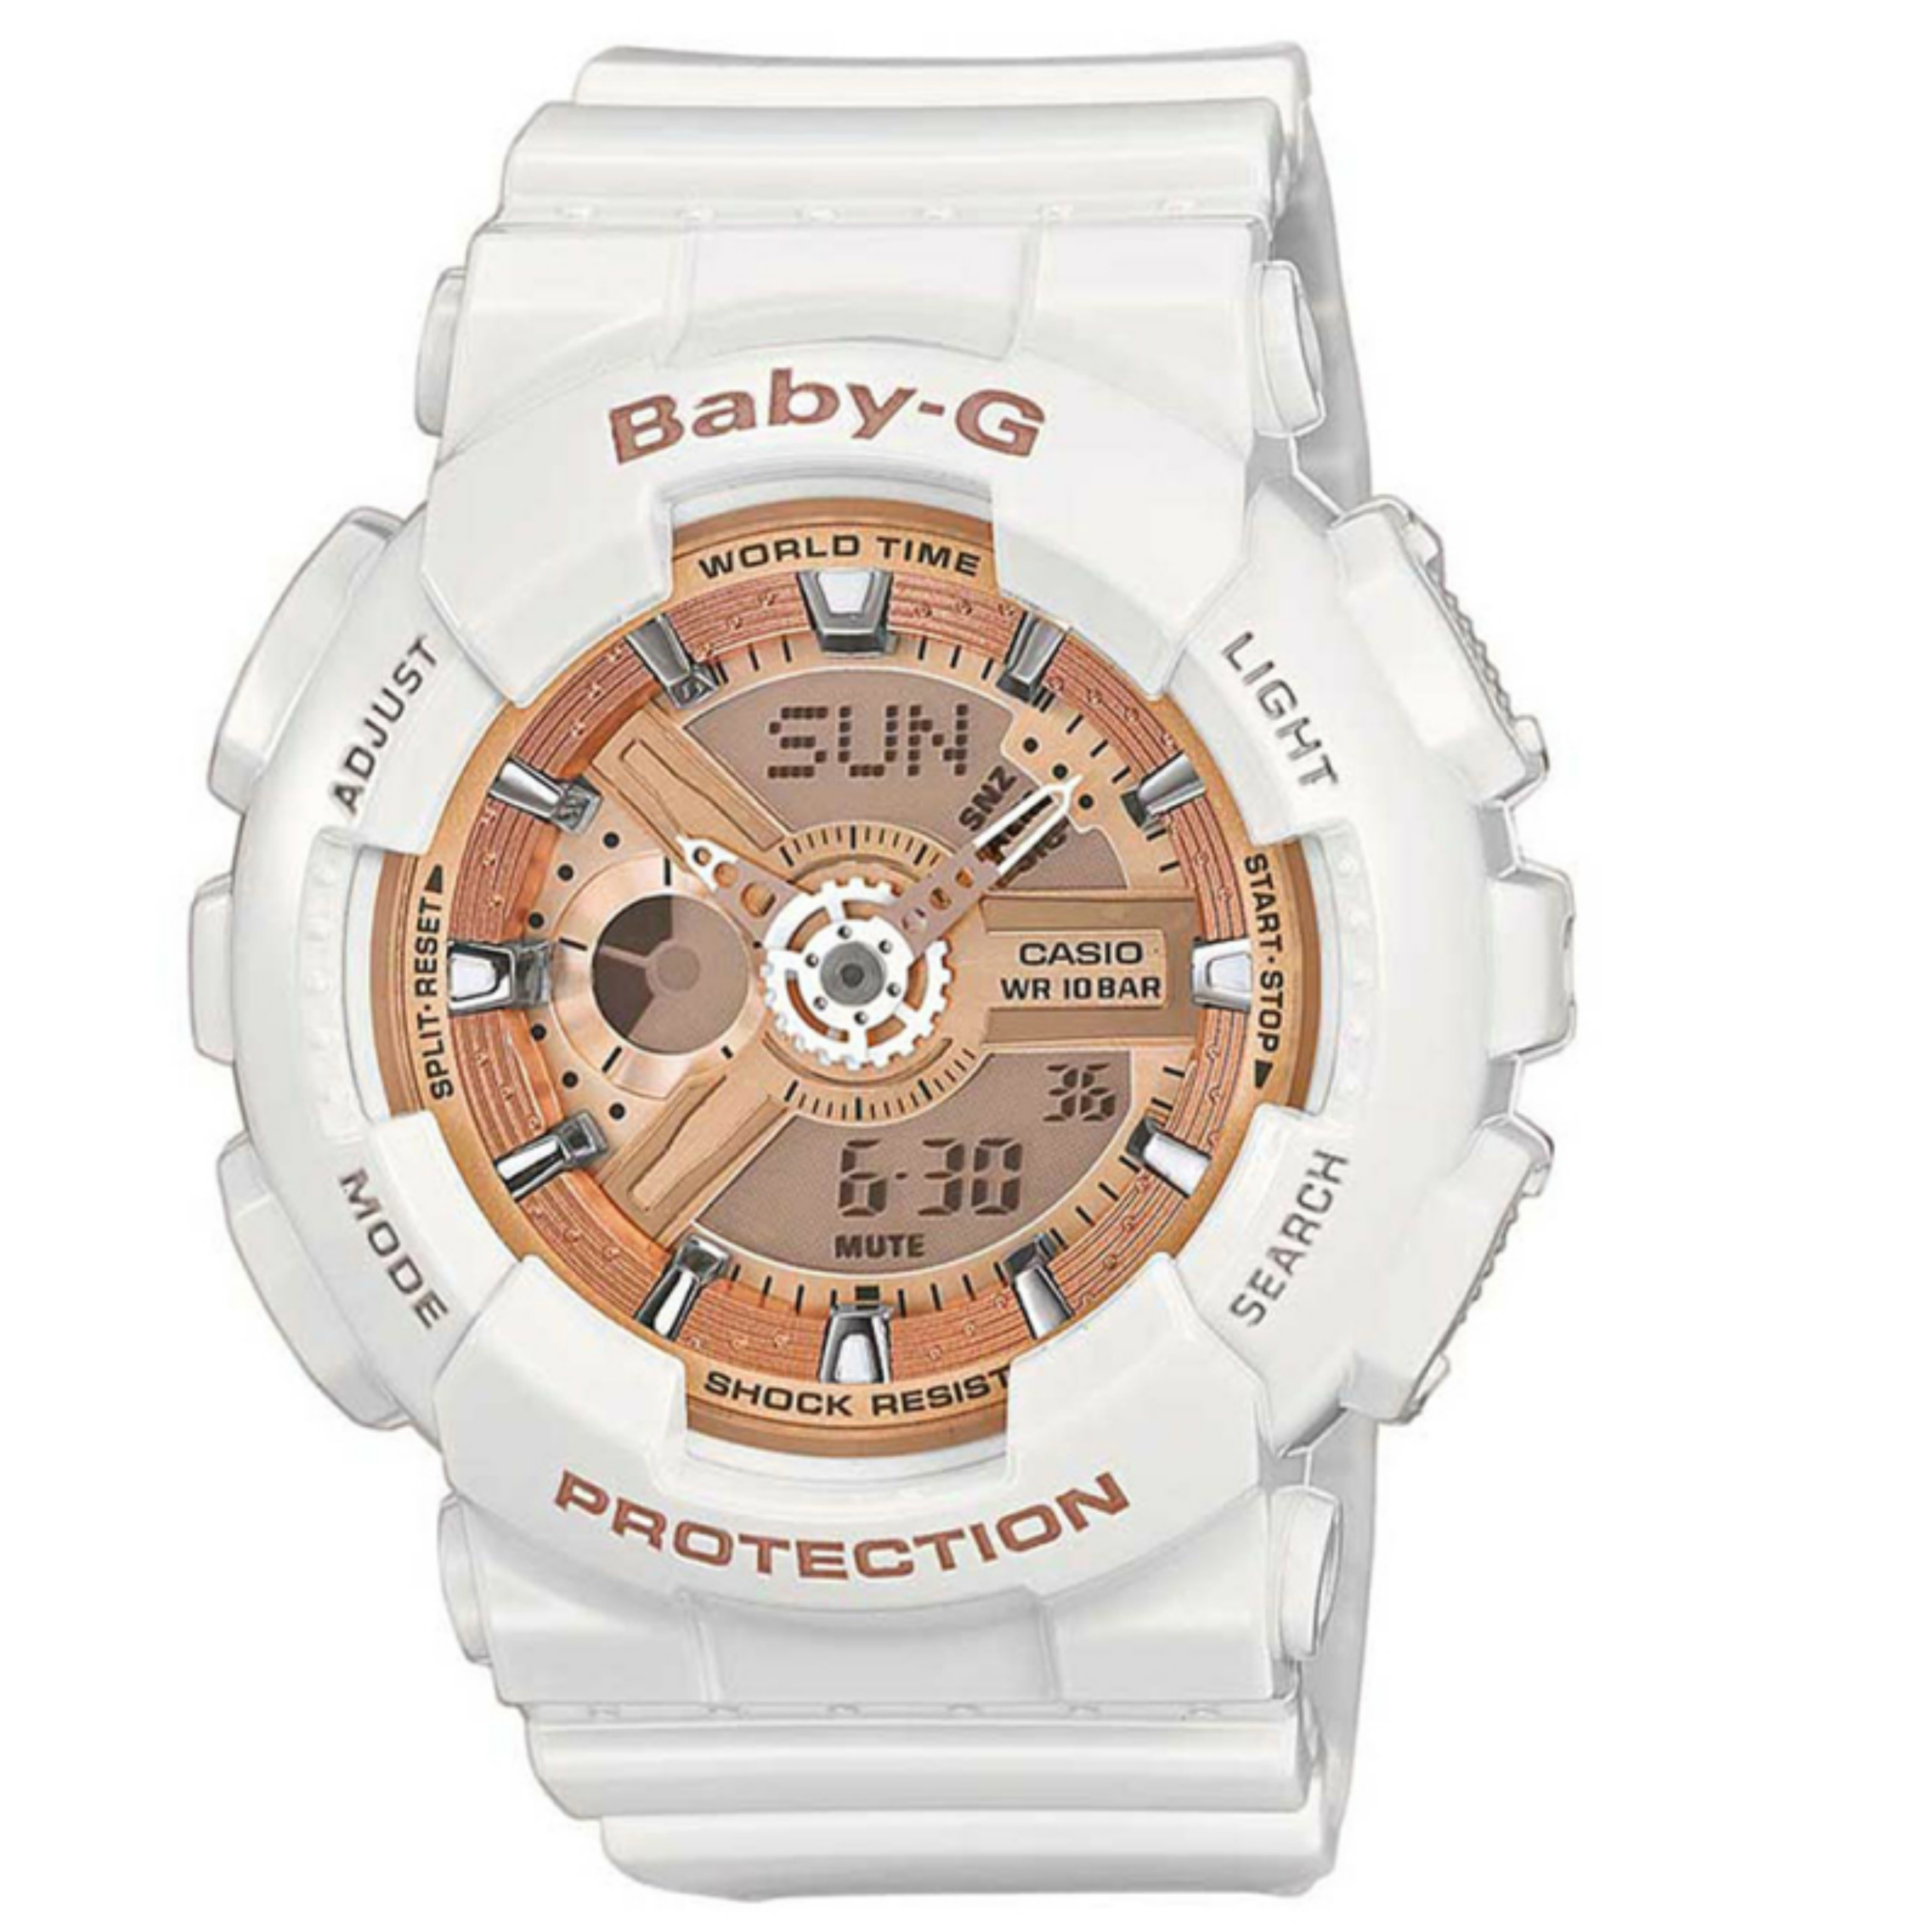 Casio Baby-G BA110-7A1ER Combination Watch|5 Alarms|Shock-Water Resist|LCD|White